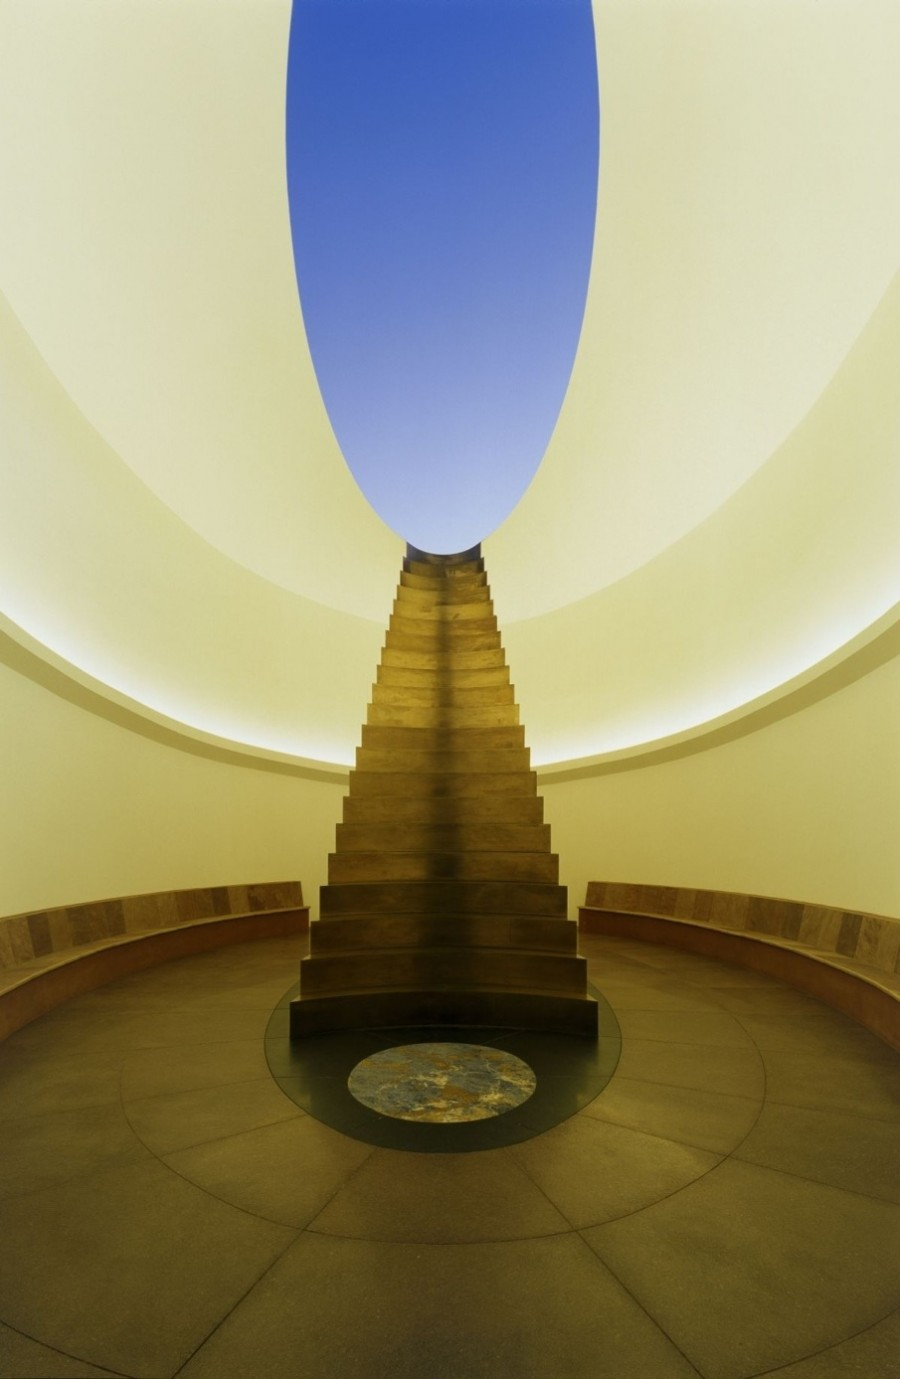 James Turrell Roden Creater 2010